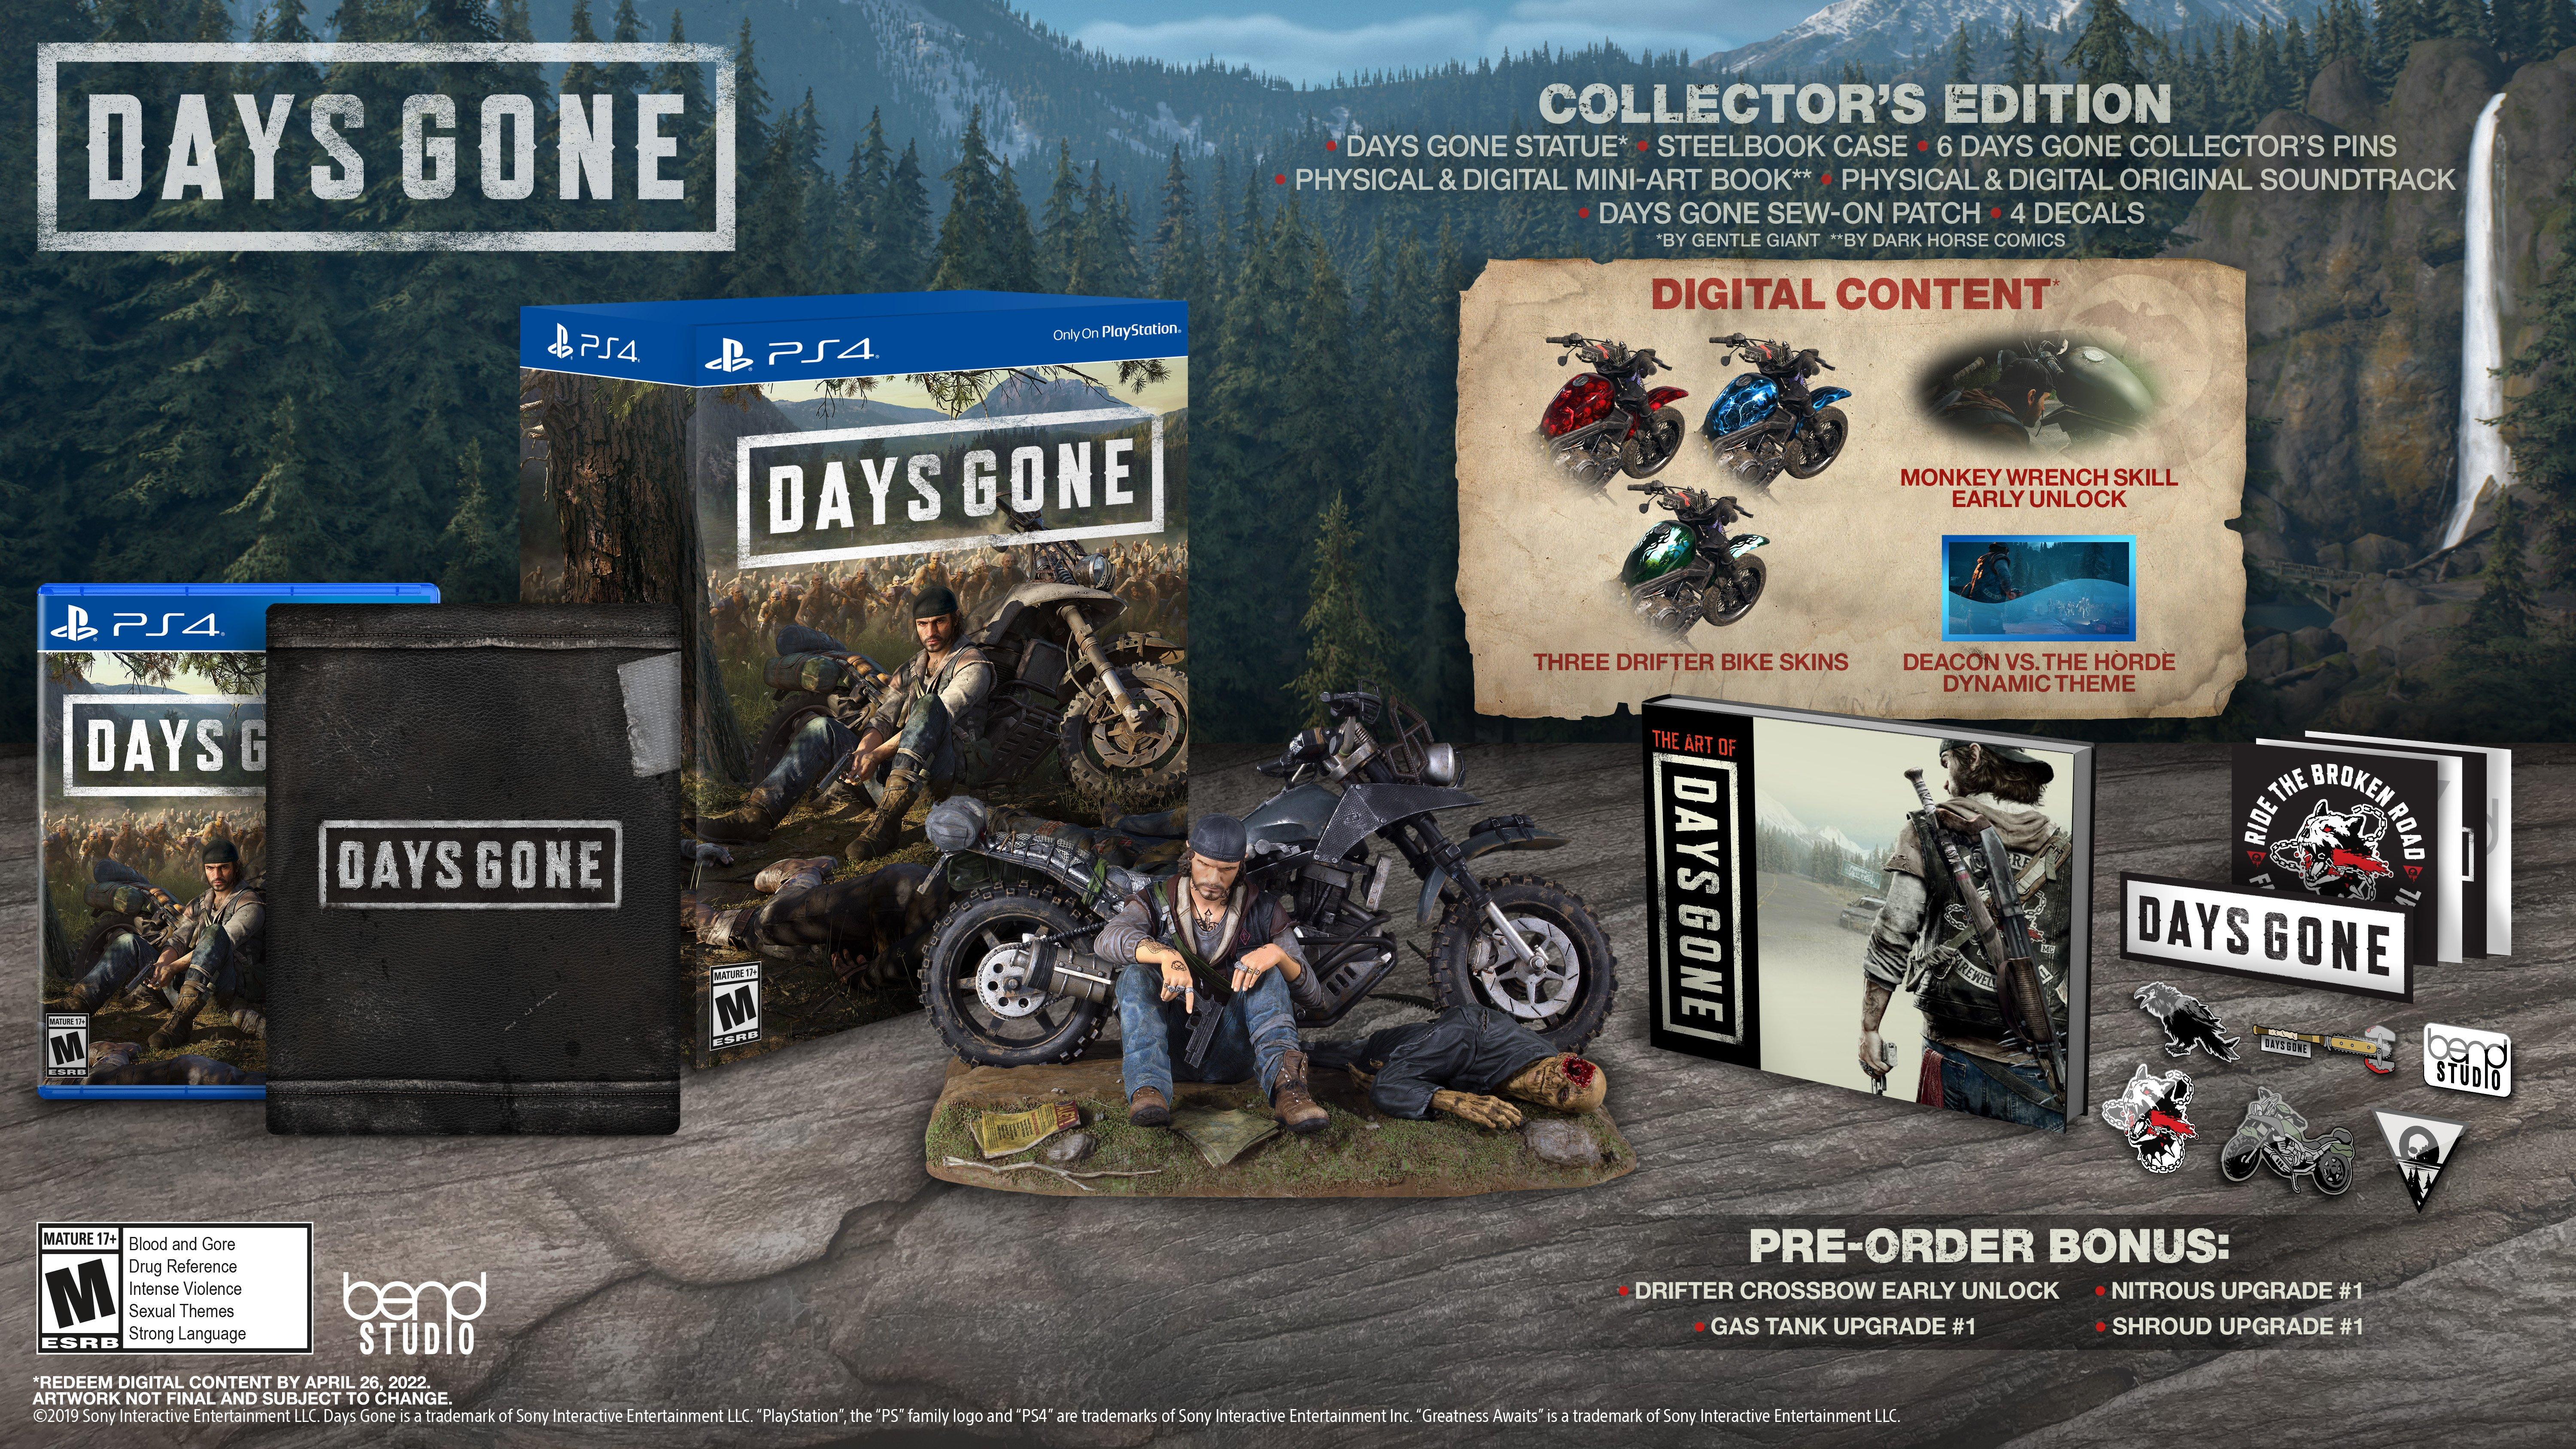 Days Gone Collector's Edition | PlayStation 4 | GameStop